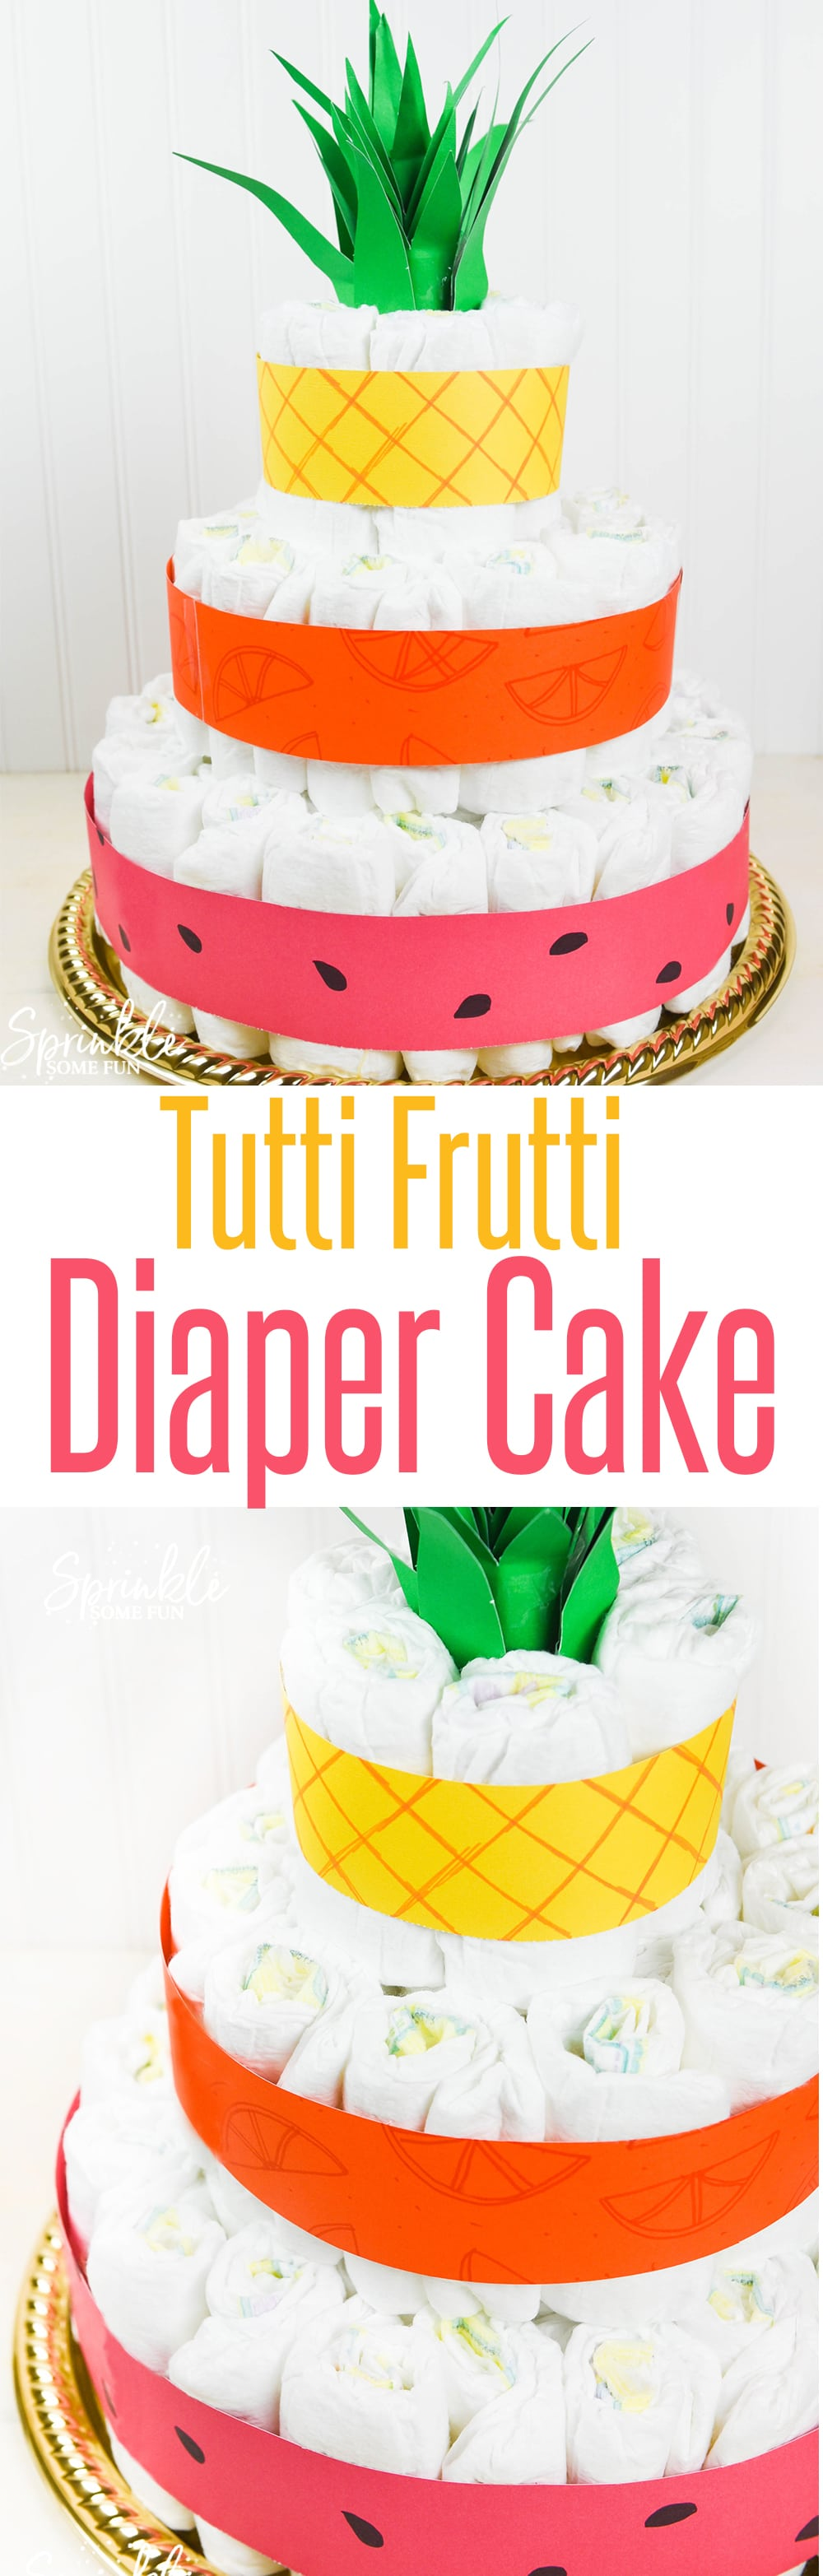 This Tutti Frutti diaper cake is so cute. I love the pineapple top with pineapple, orange and watermelon layers!